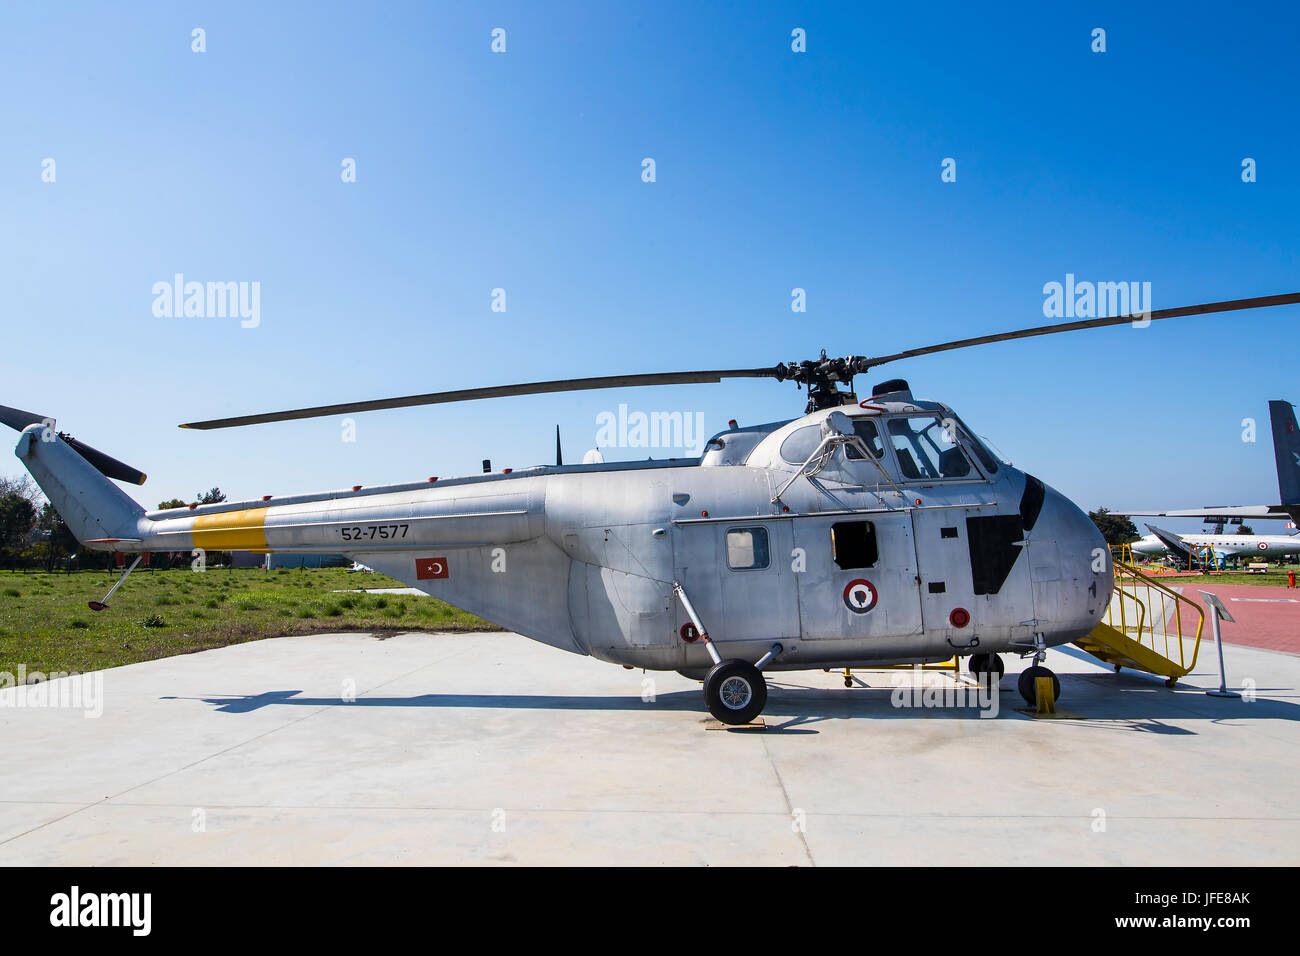 ISTANBUL, TURKEY - 4 APRIL , 2017: Museum of aviation in Istanbul is represented by a large collection of military - Stock Image